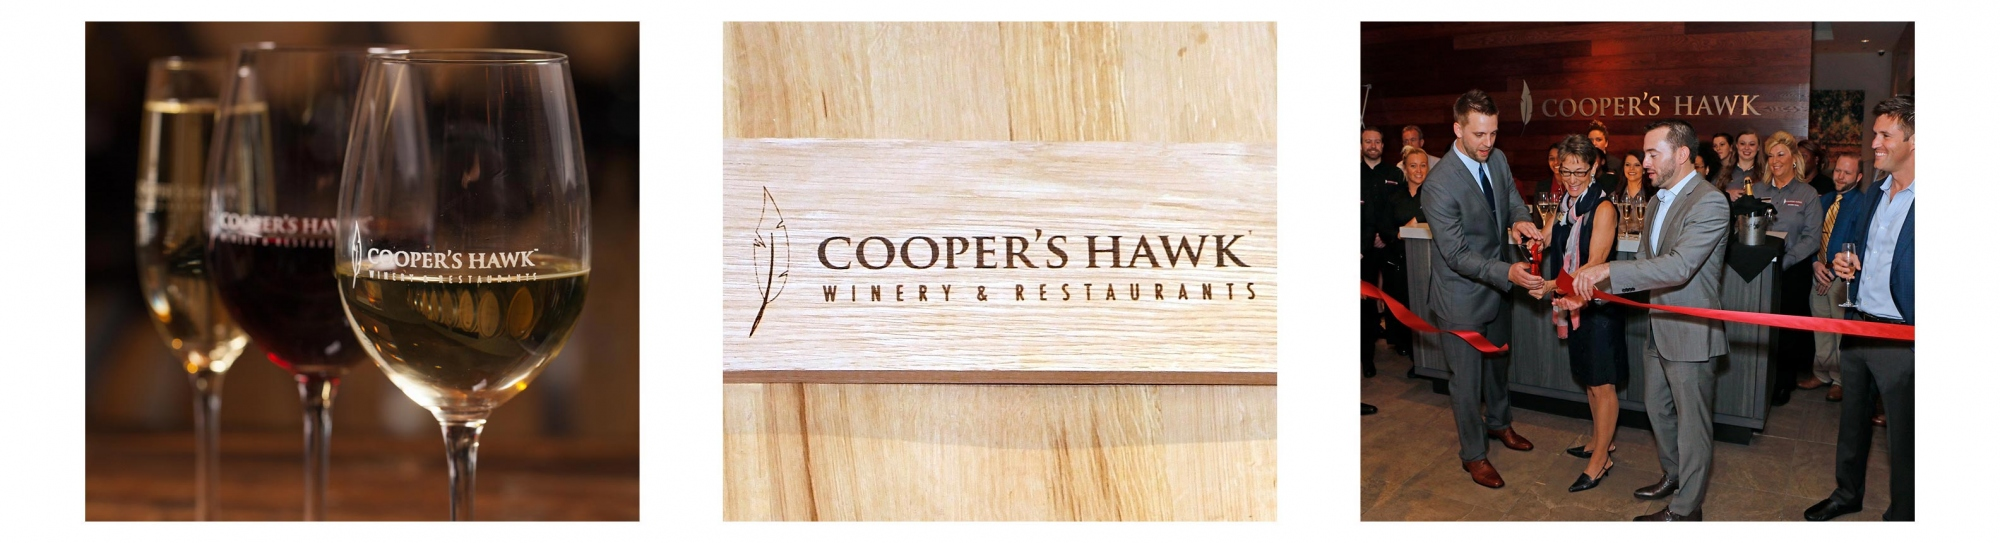 Image of wine, Coopers Hawk logo and ribbon cutting ceremony